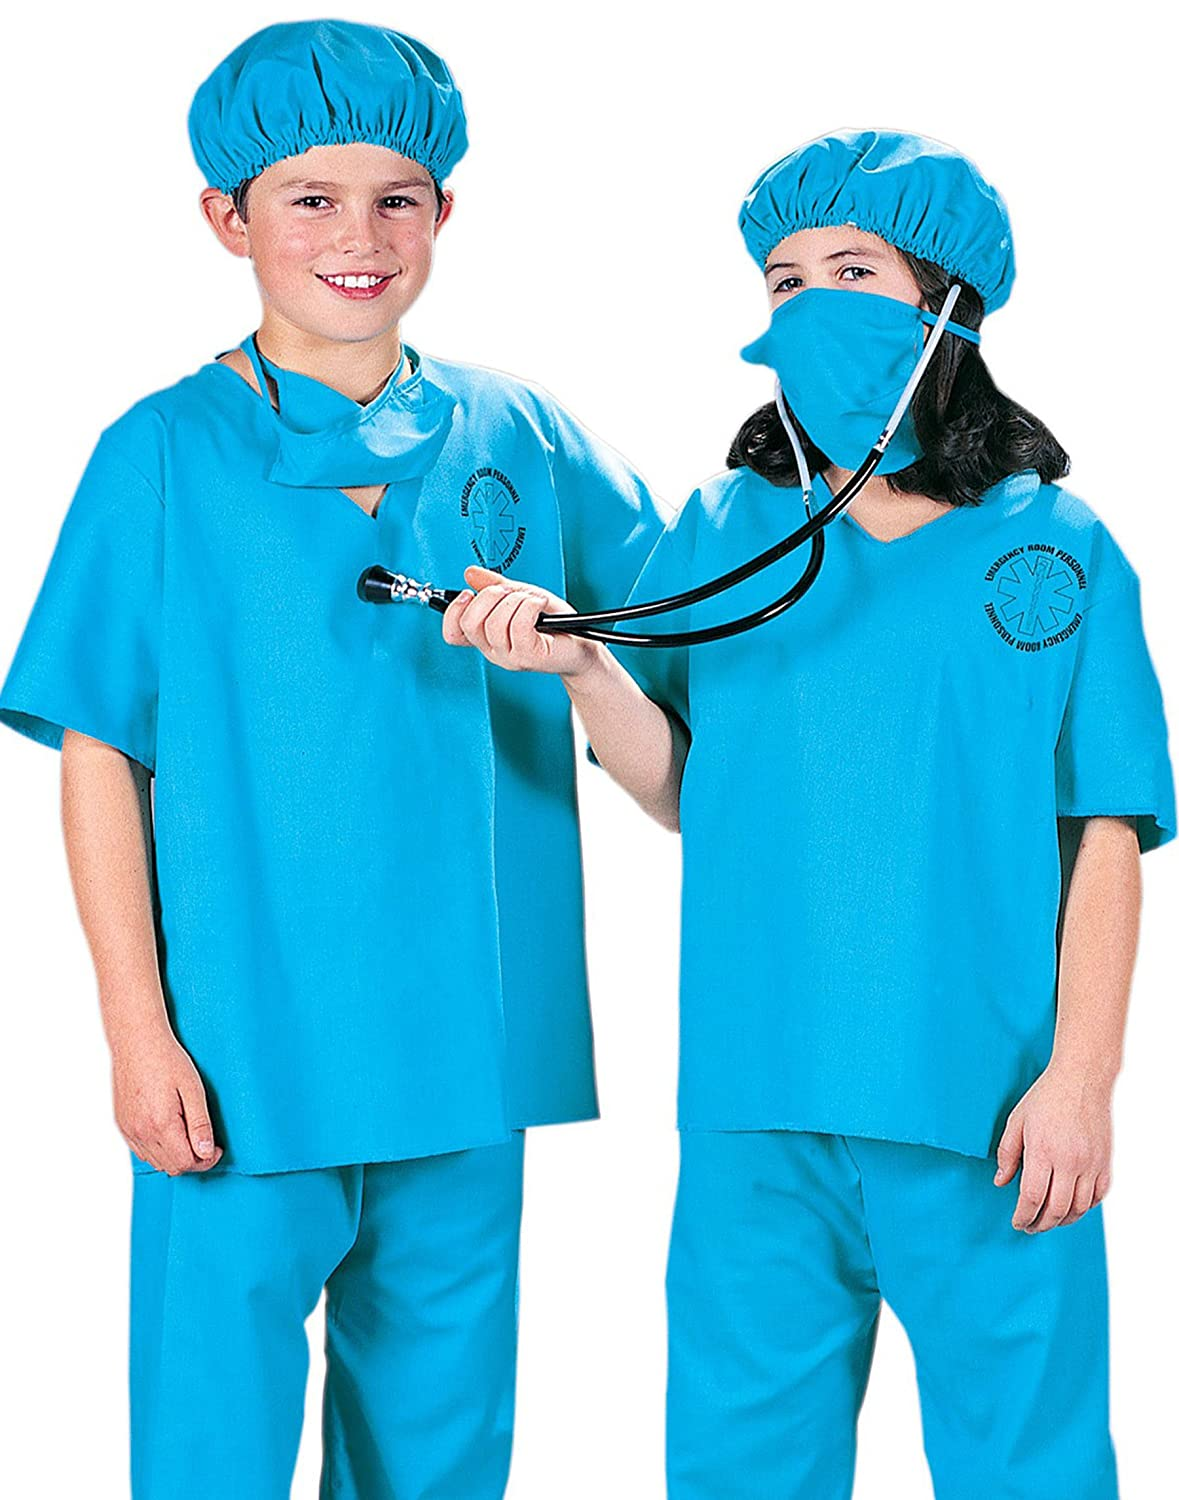 amazoncom doctor costume child child 8 10 toys games - Kids Doctor Halloween Costume